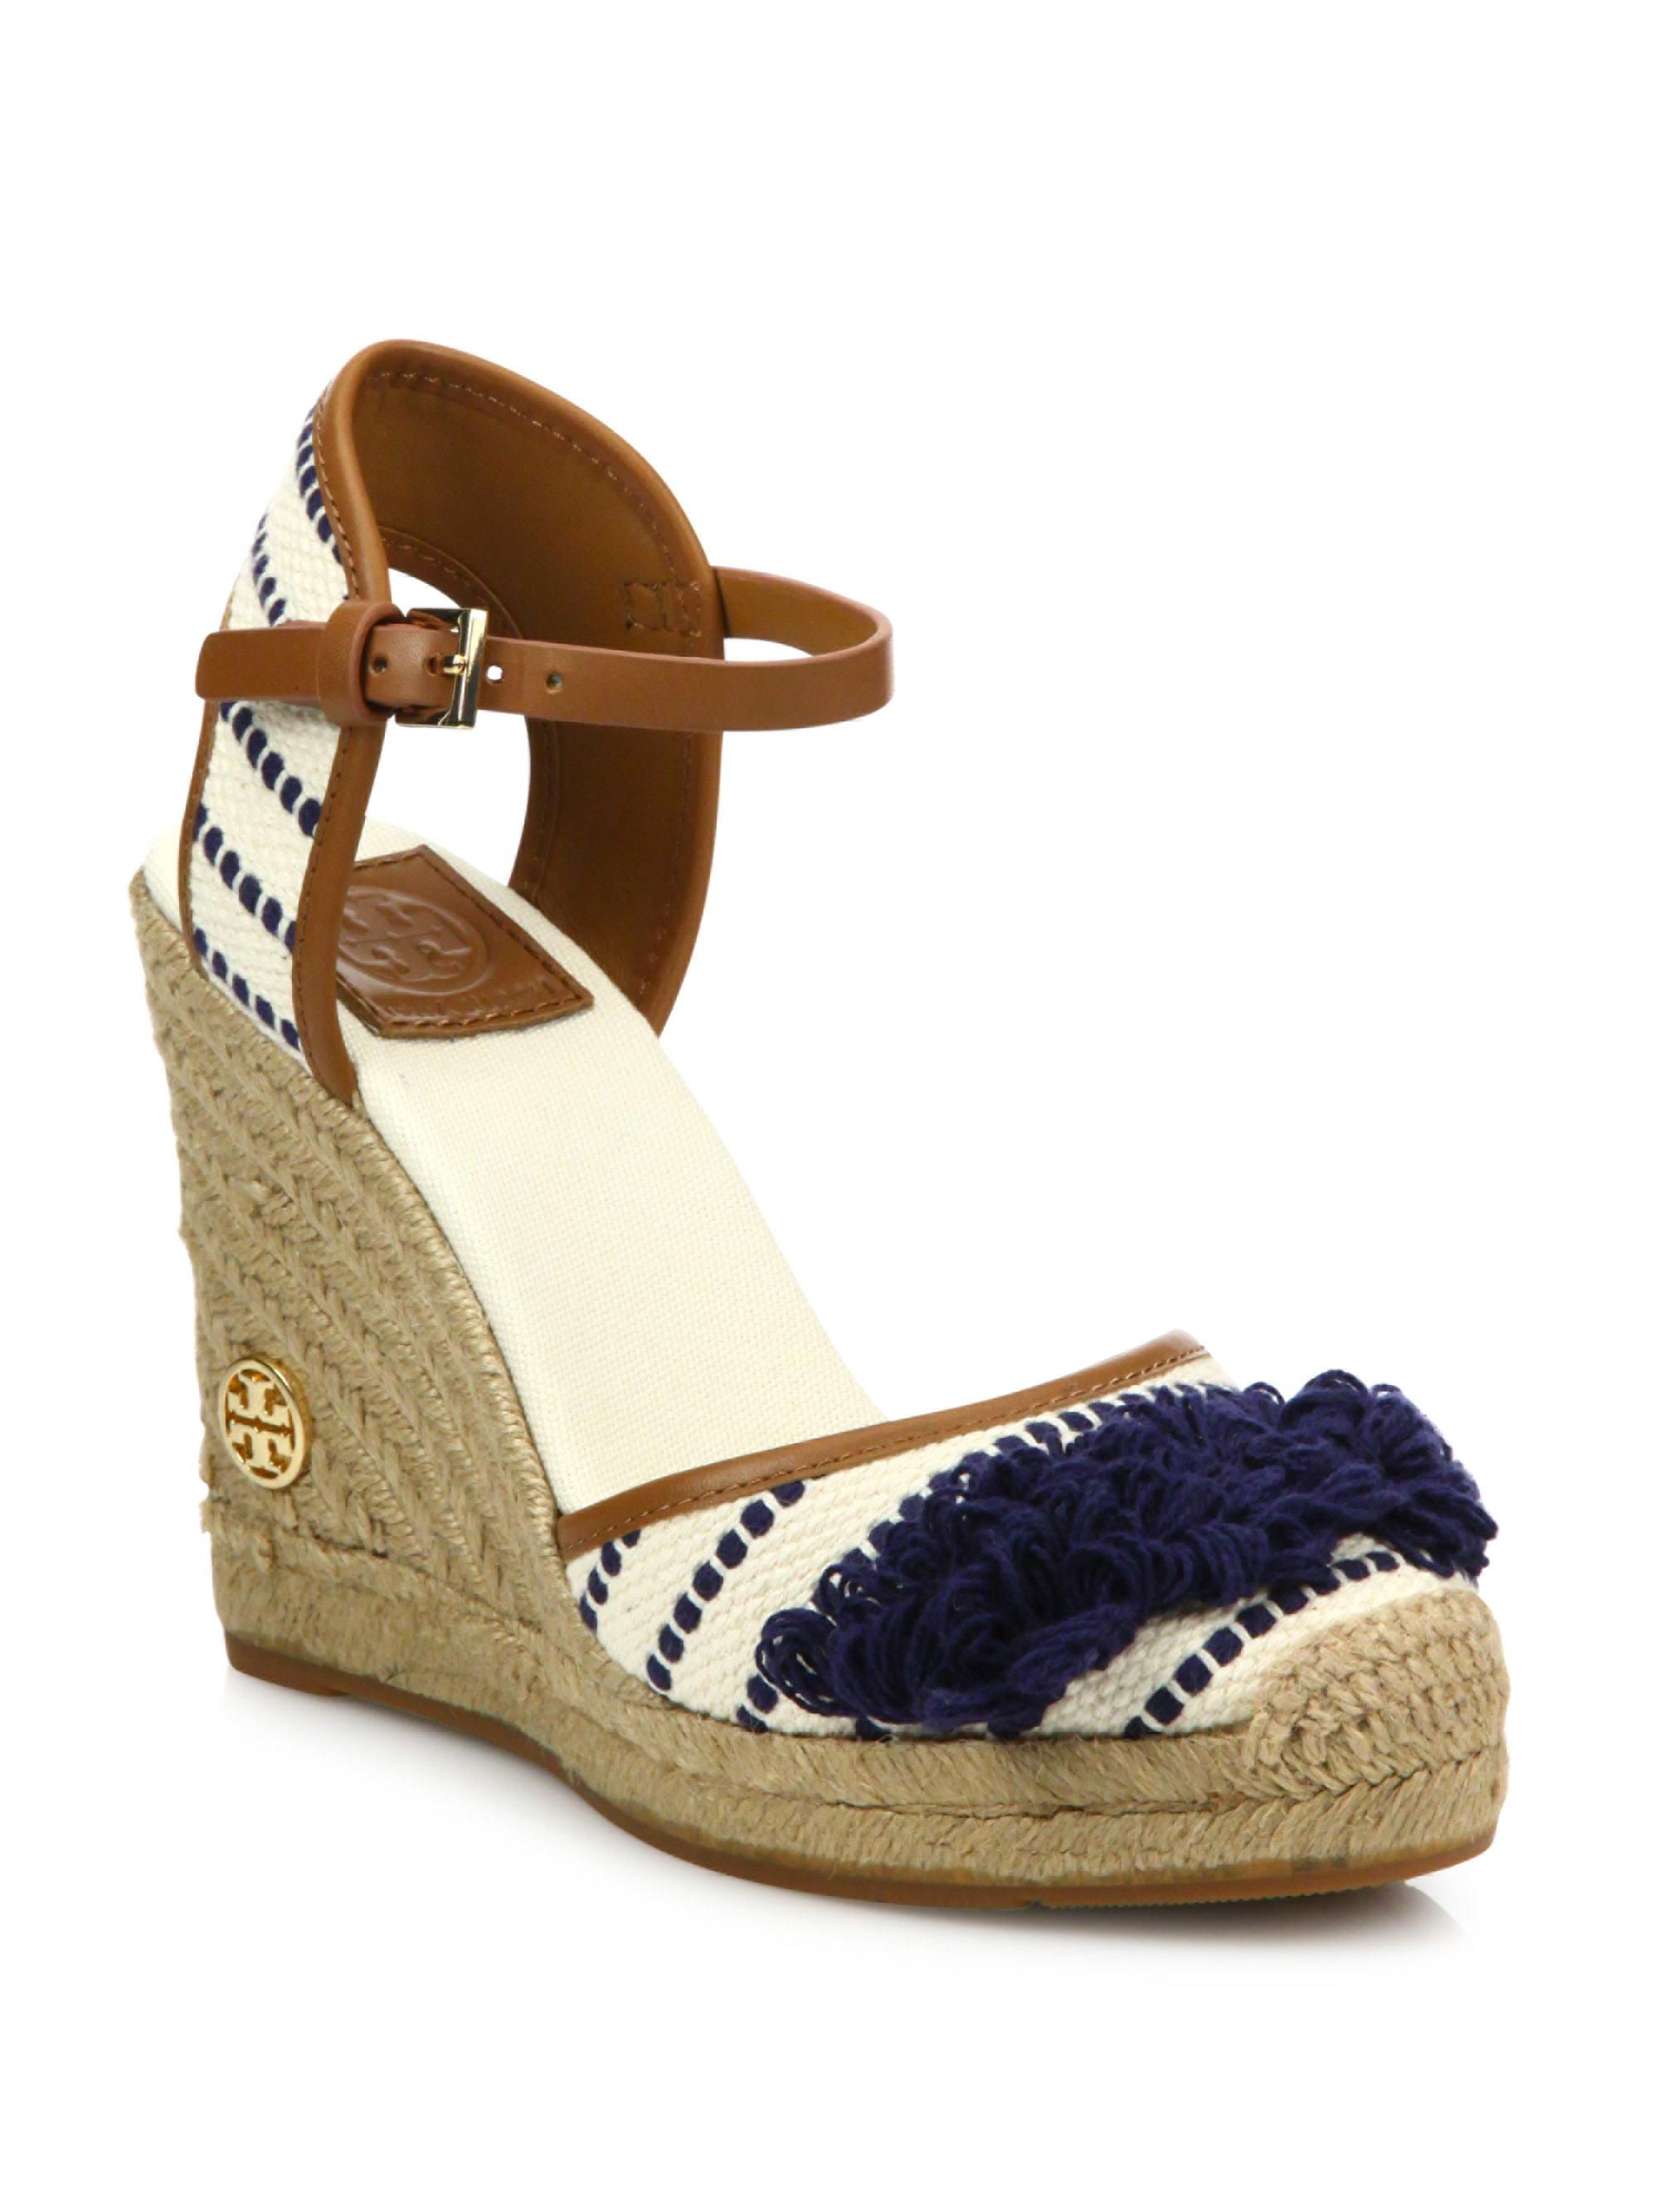 0d8763e39 Tory Burch Shaw Striped Wedge Espadrilles in Blue - Lyst